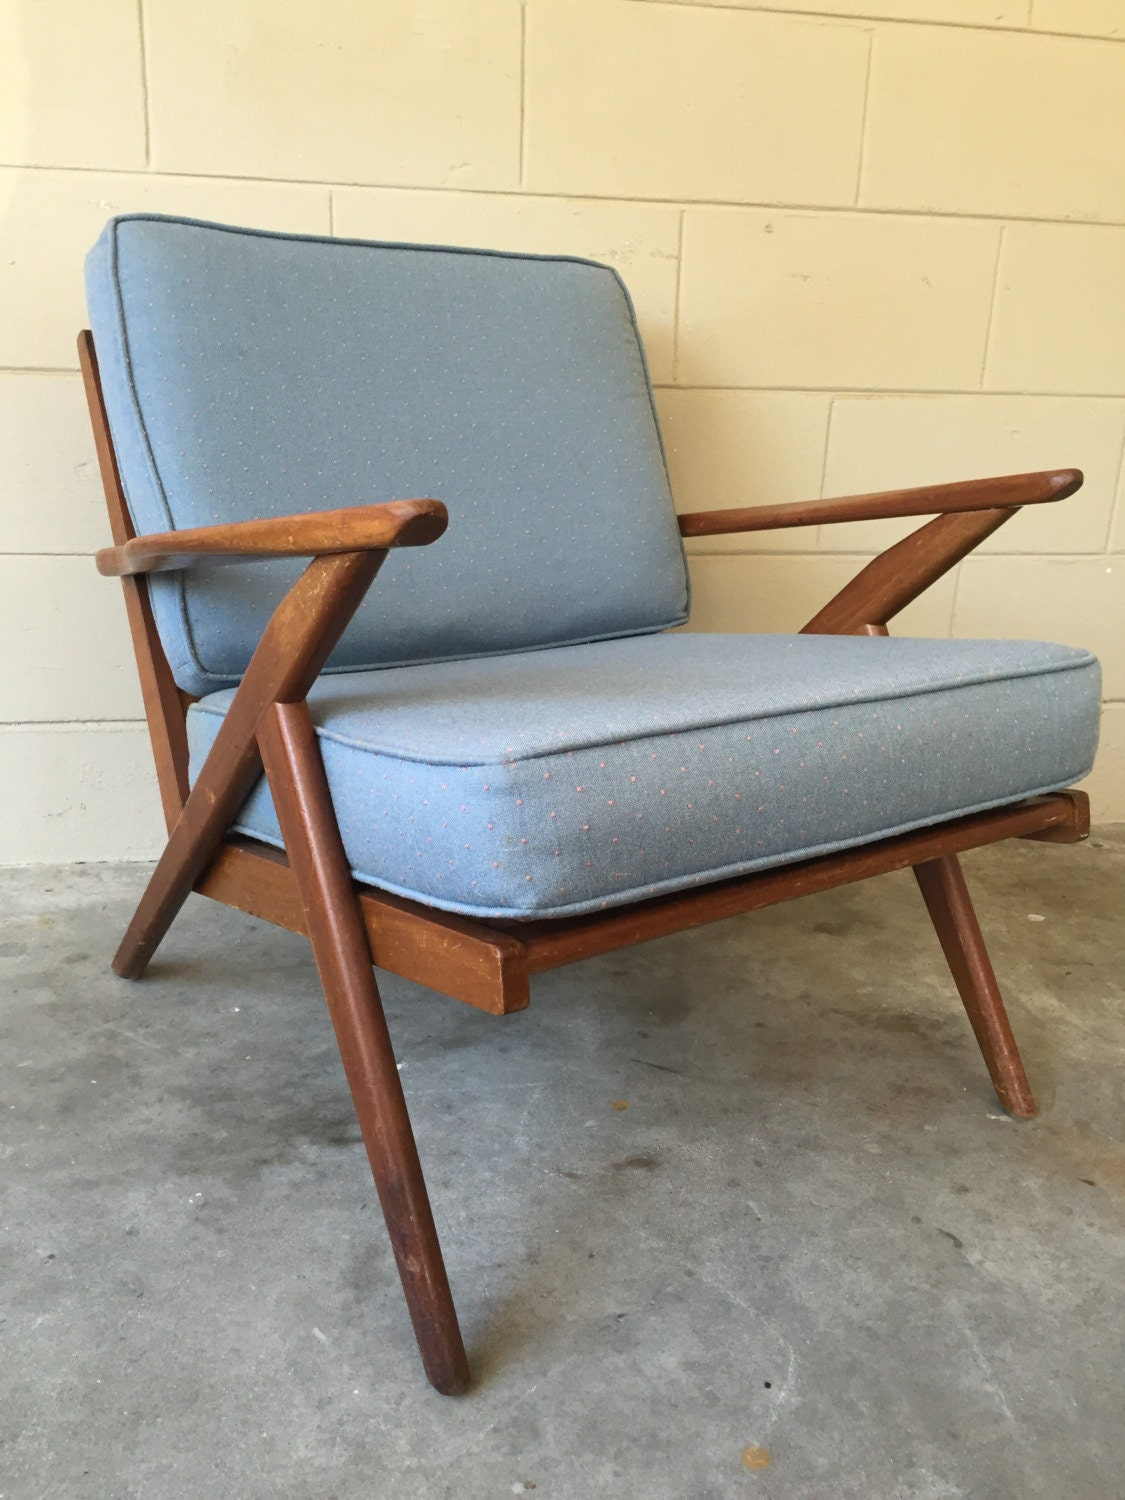 Selig inspired mid century modern vintage z chair haute for Z chair mid century